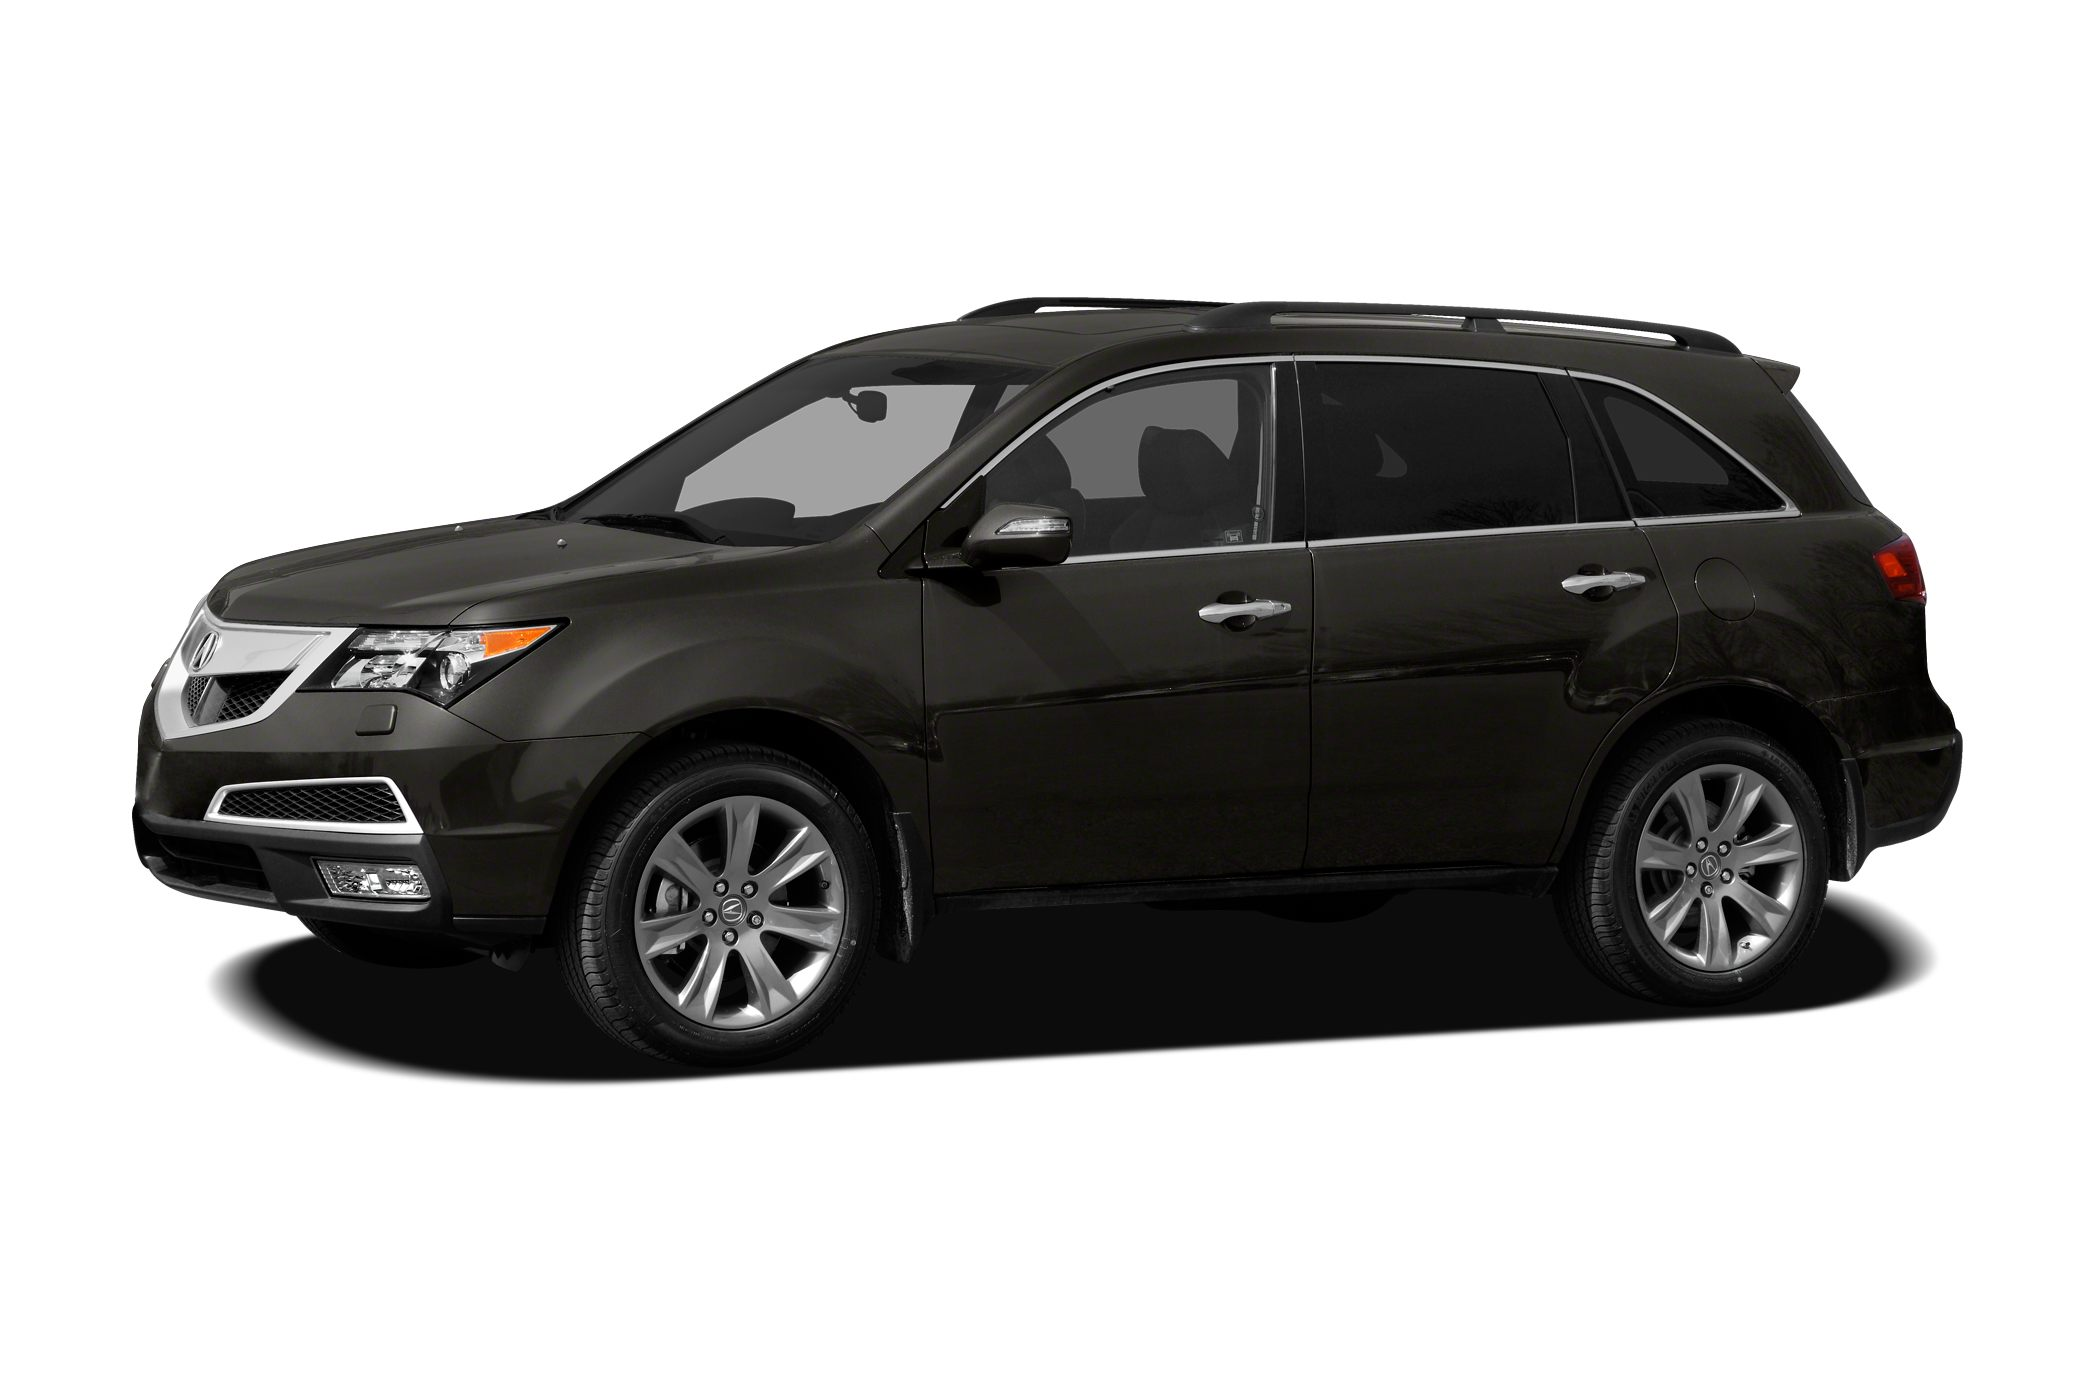 2011 Acura MDX 37 Technology Here at Lake Keowee Ford our customers come first and our prices wil